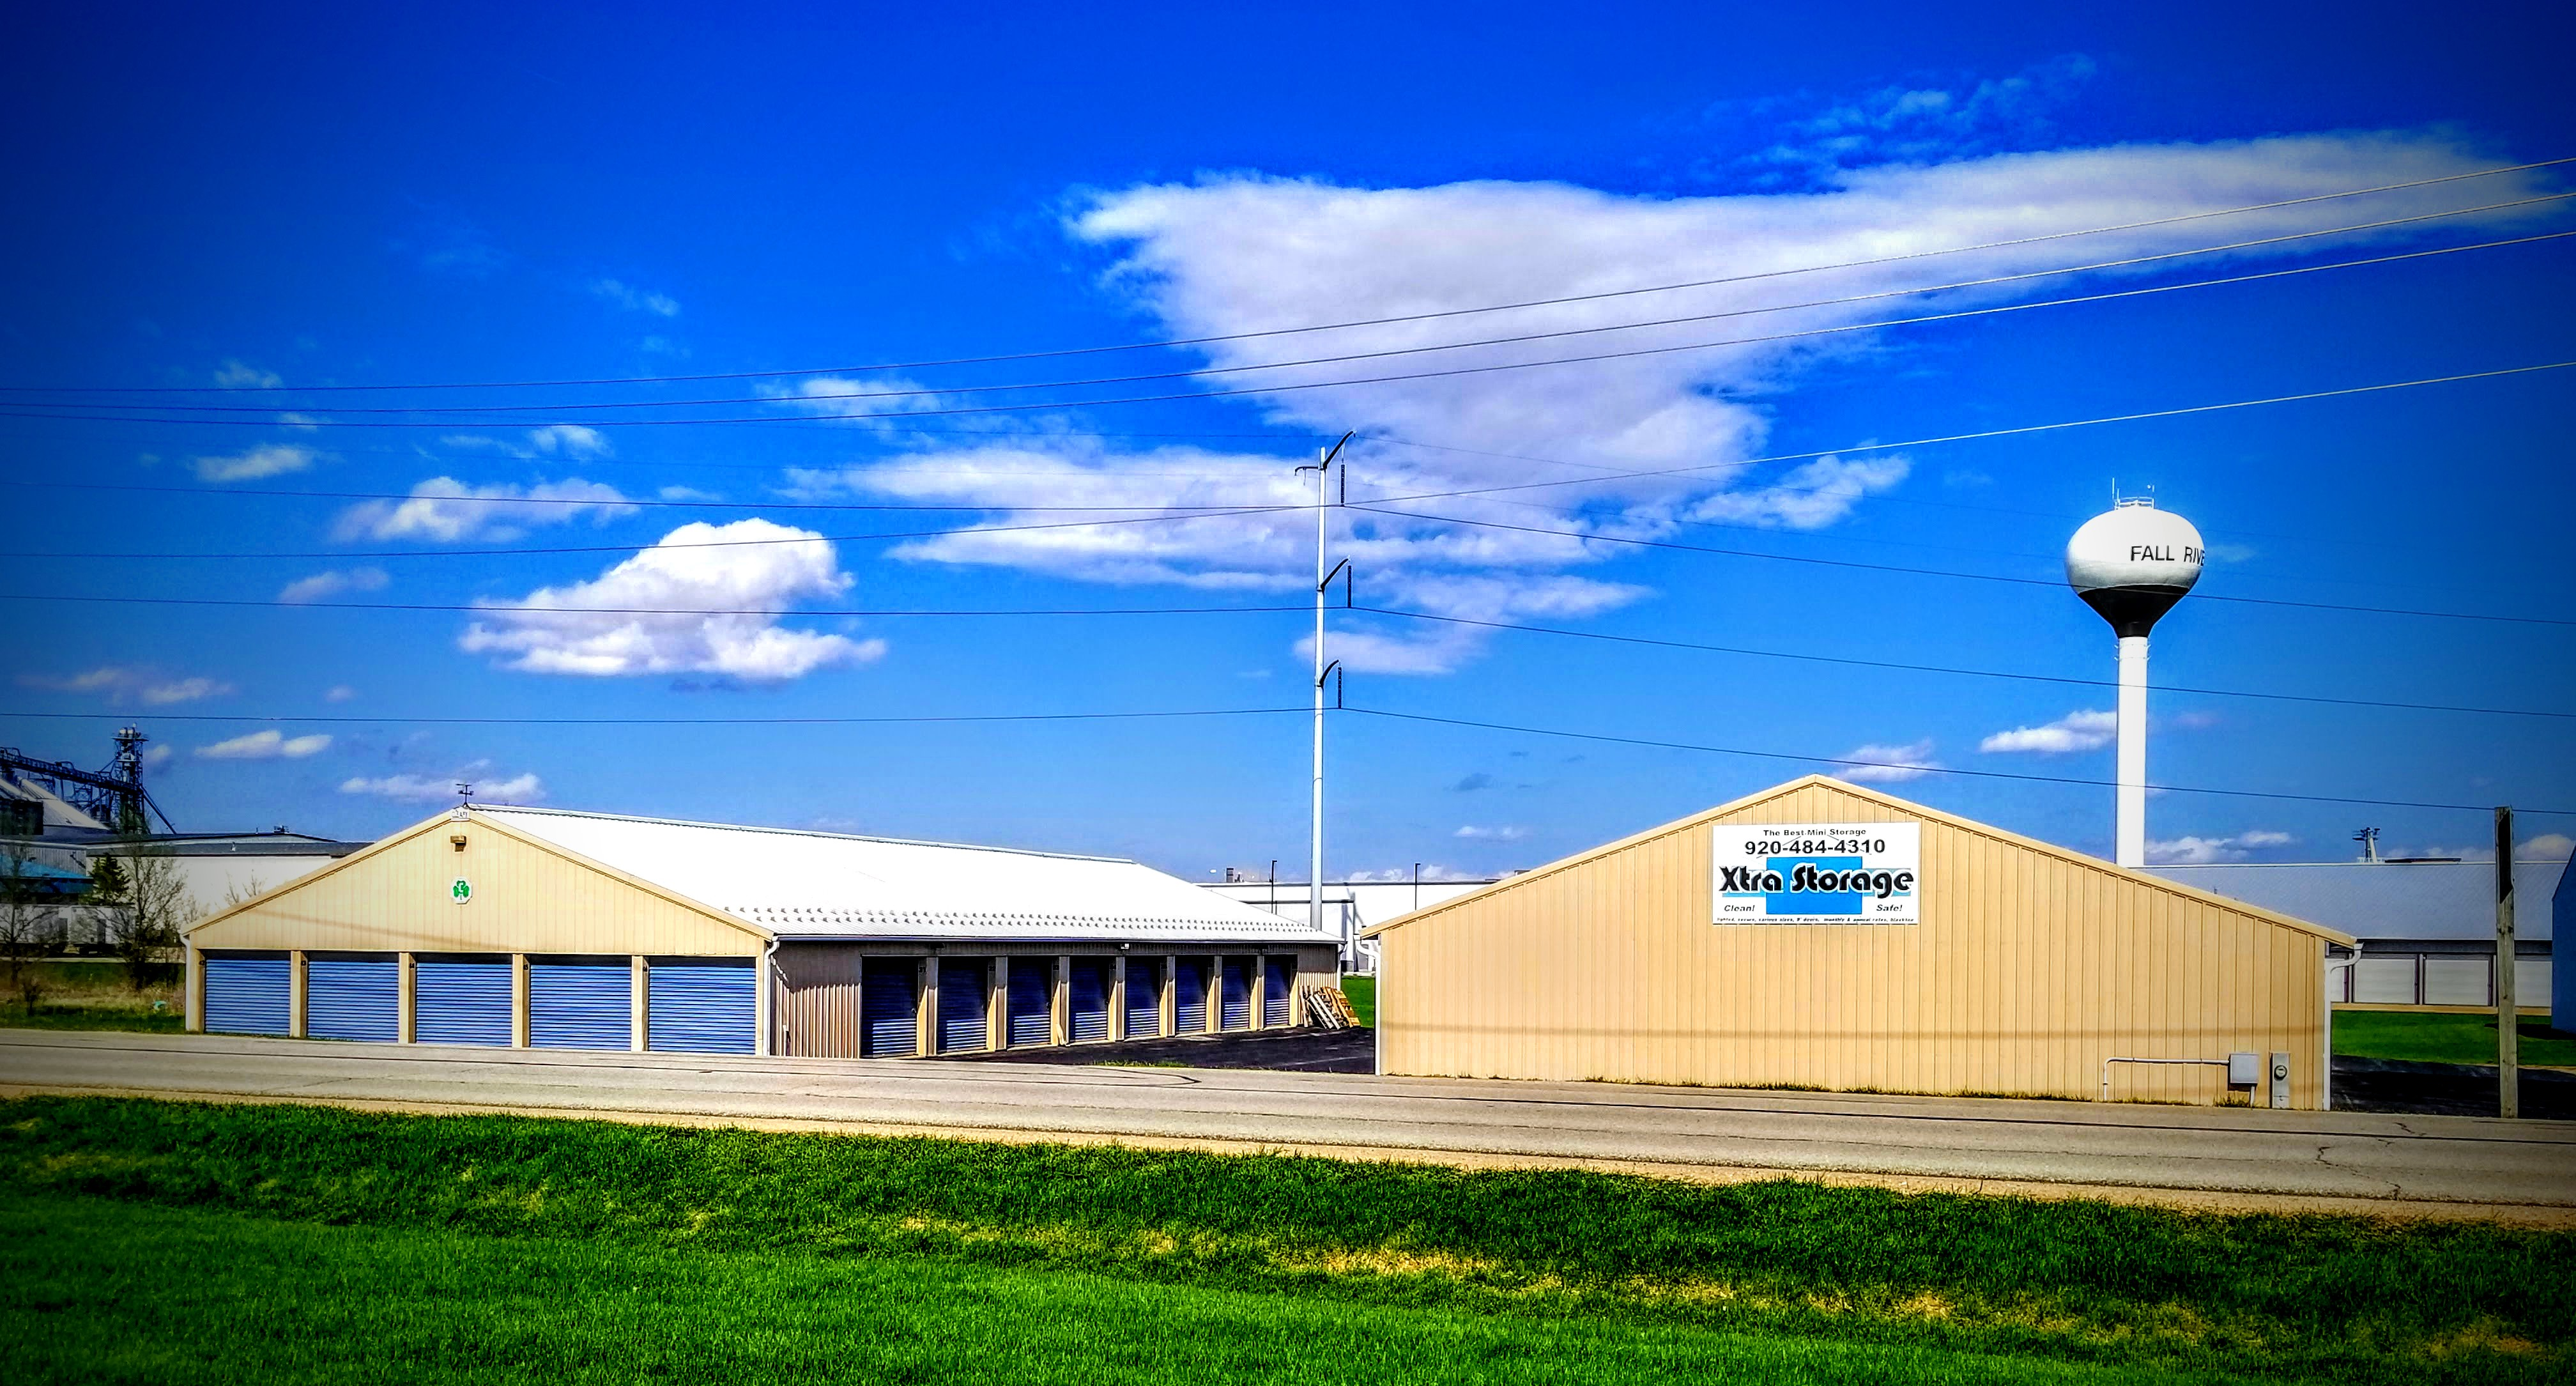 ... Wisconsin Space Store Xtra Storage Fall River, Wisconsin